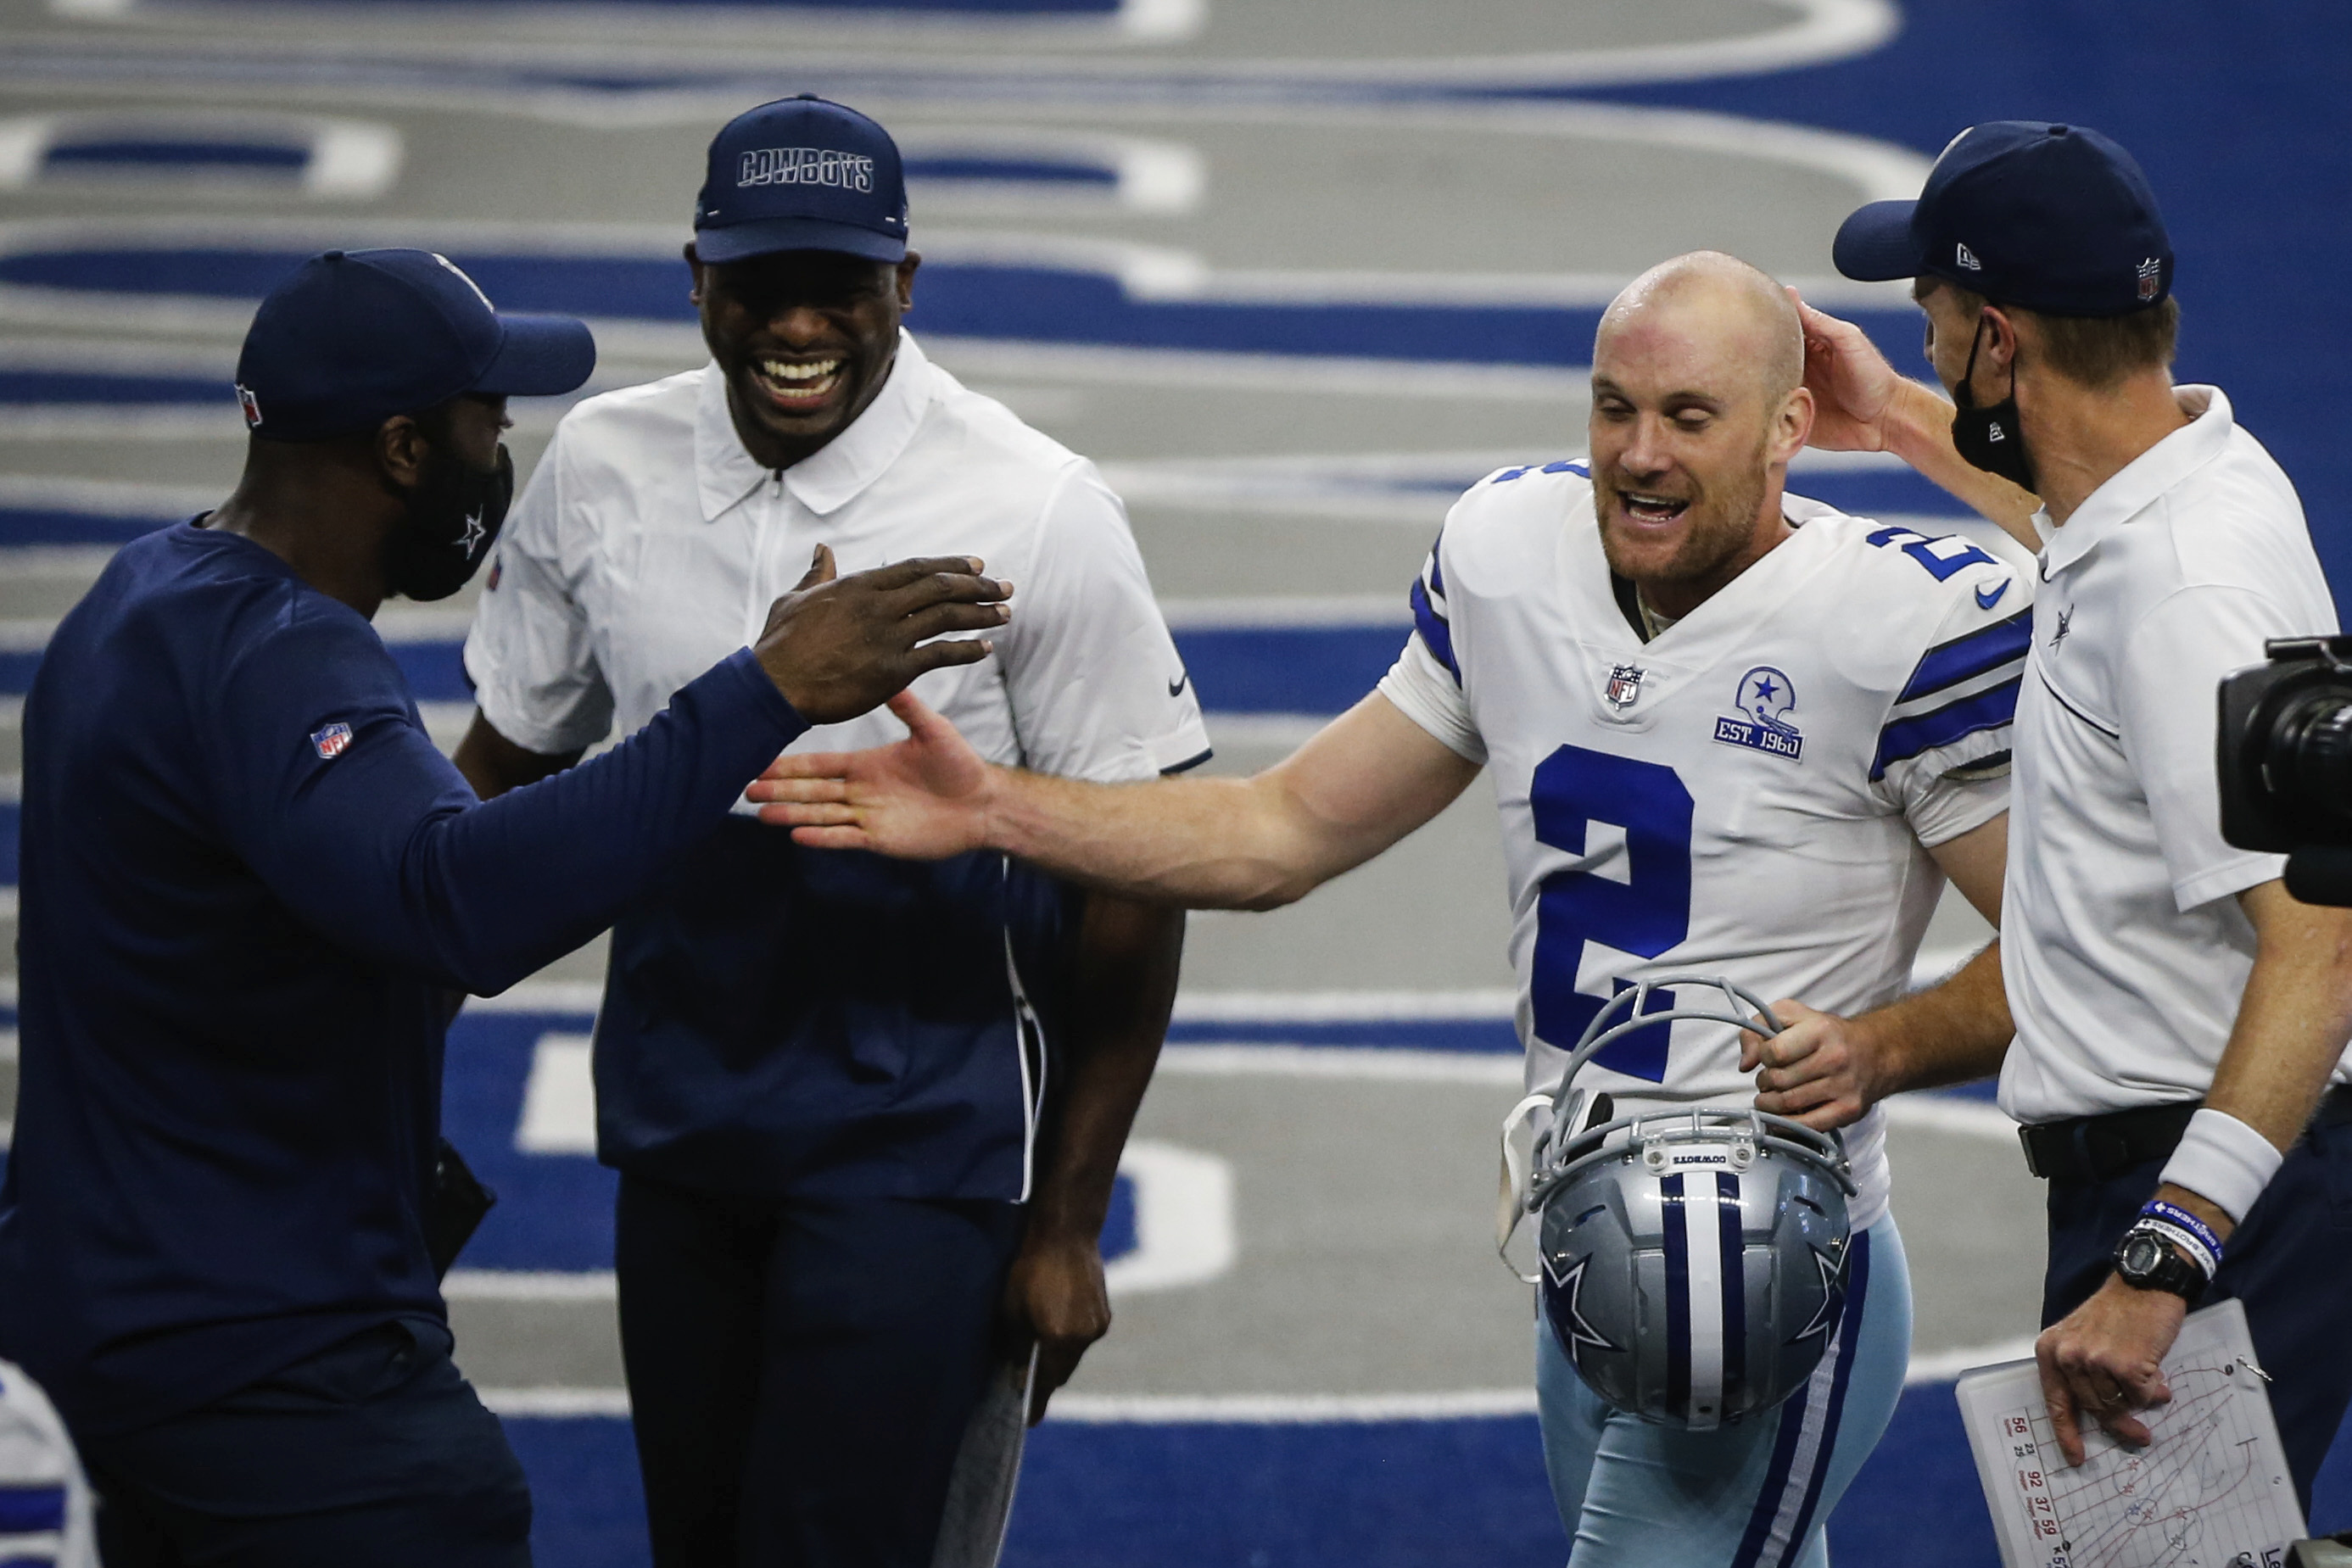 Dallas Cowboys kicker Greg Zuerlein is congratulated as he walks off the field kicking the game-winning field goal against the Atlanta Falcons during an NFL football game Sunday, Sept. 20, 2020, in Arlington, Texas. (Yffy Yossifor/Star-Telegram via AP)